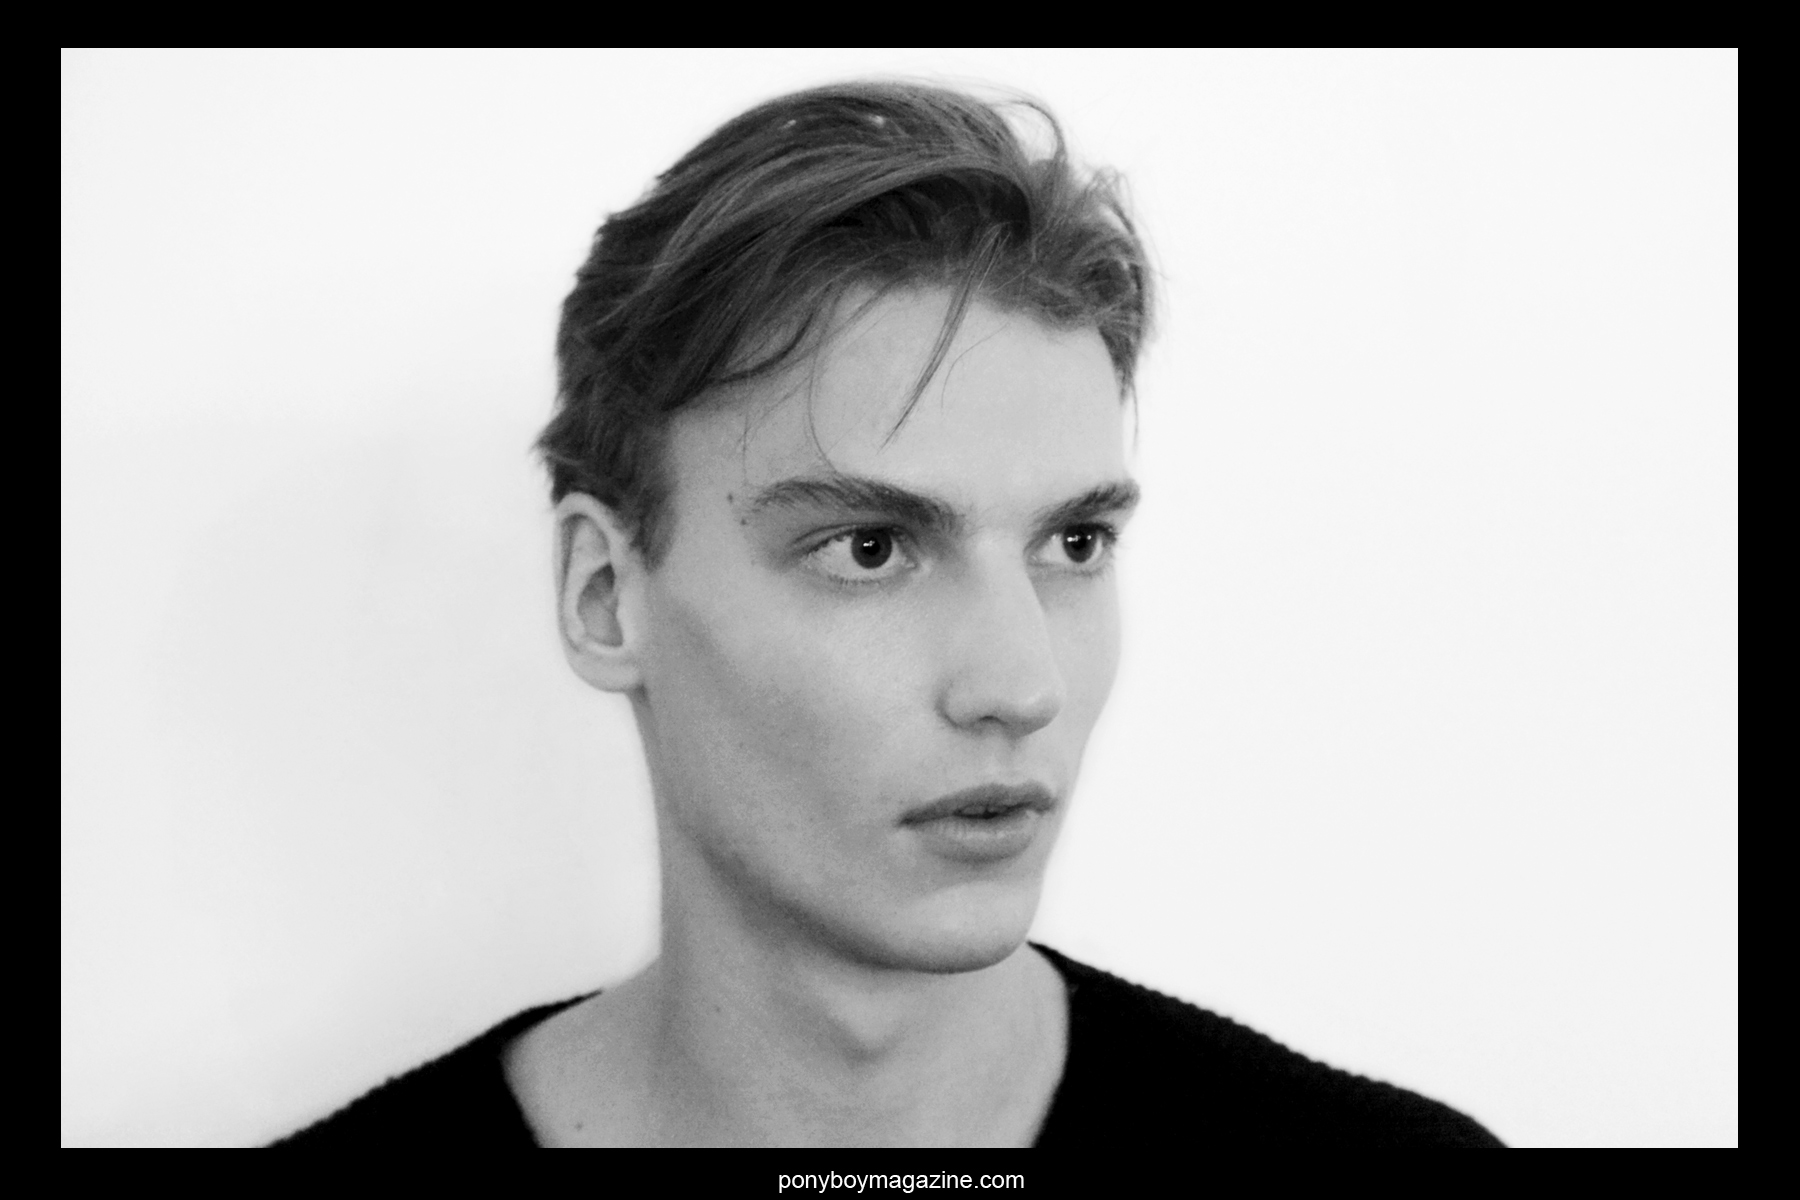 Backstage portrait by Alexander Thompson, photographed at Patrik Ervell A/W 2014 Collection in New York City.